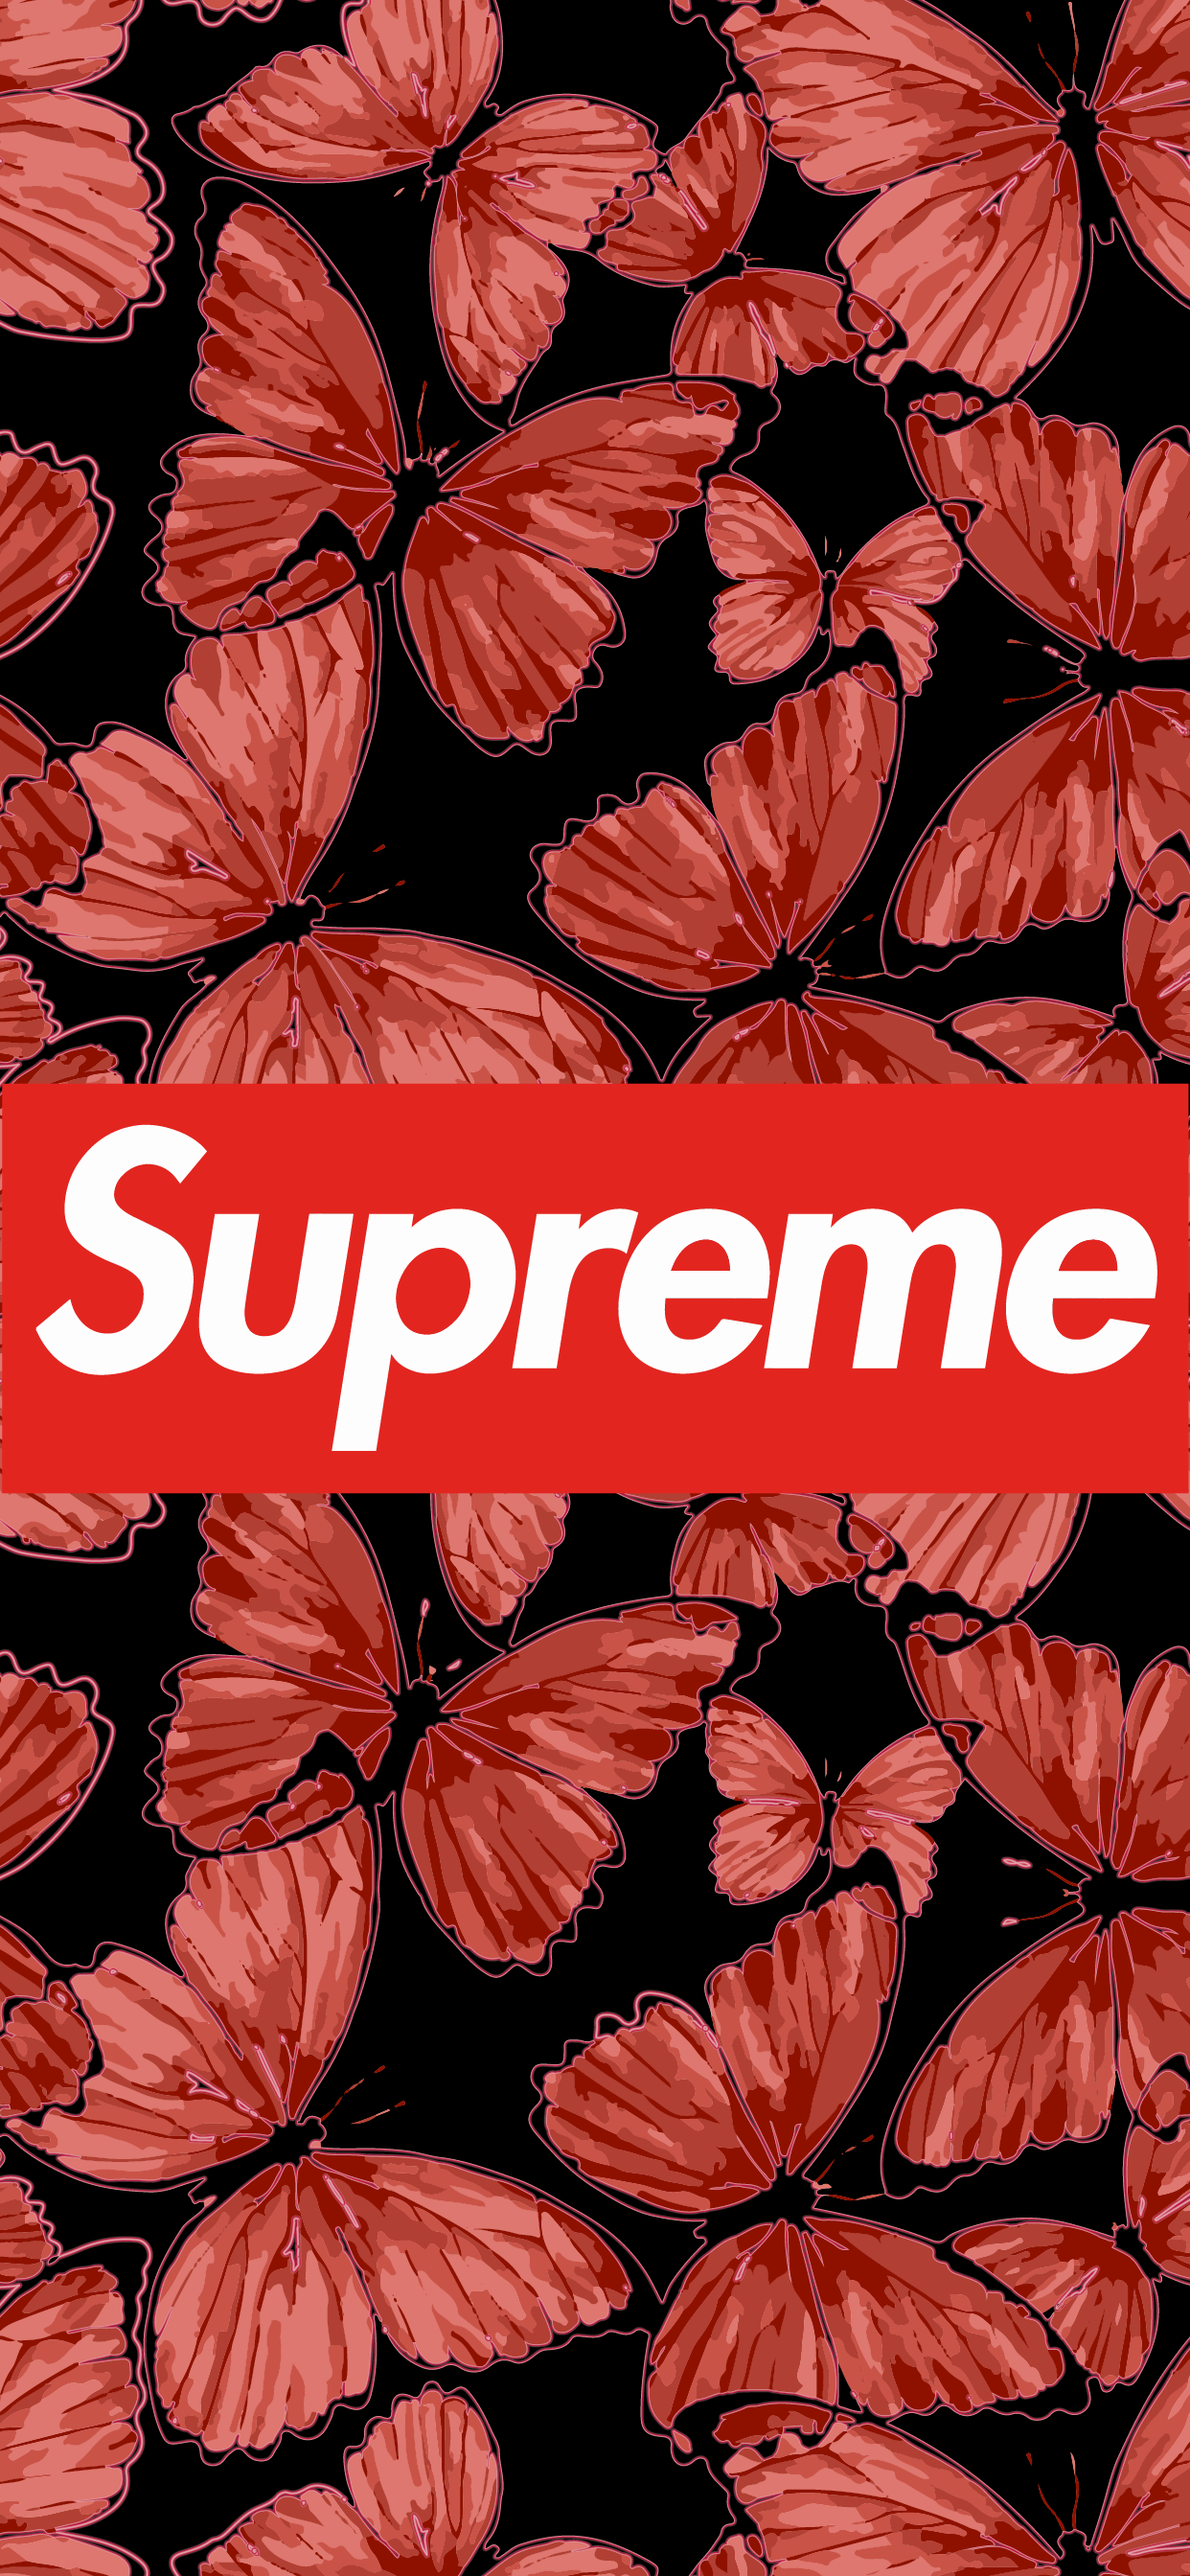 Supreme logo with red butterfly in the background aesthetic